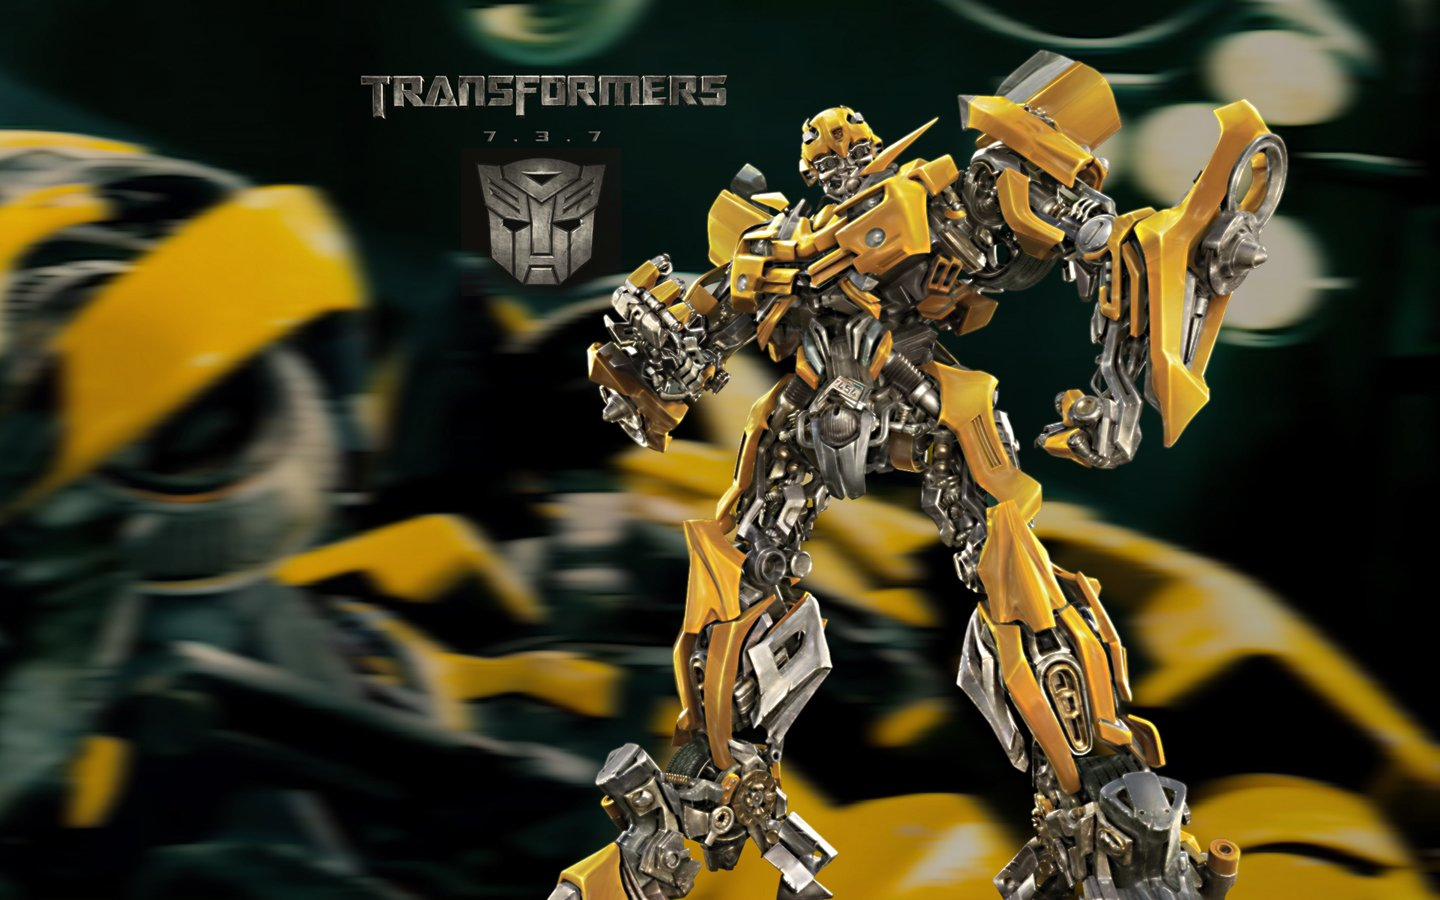 Transformers wallpaper autobots wallpapersafari - Transformers desktop backgrounds ...